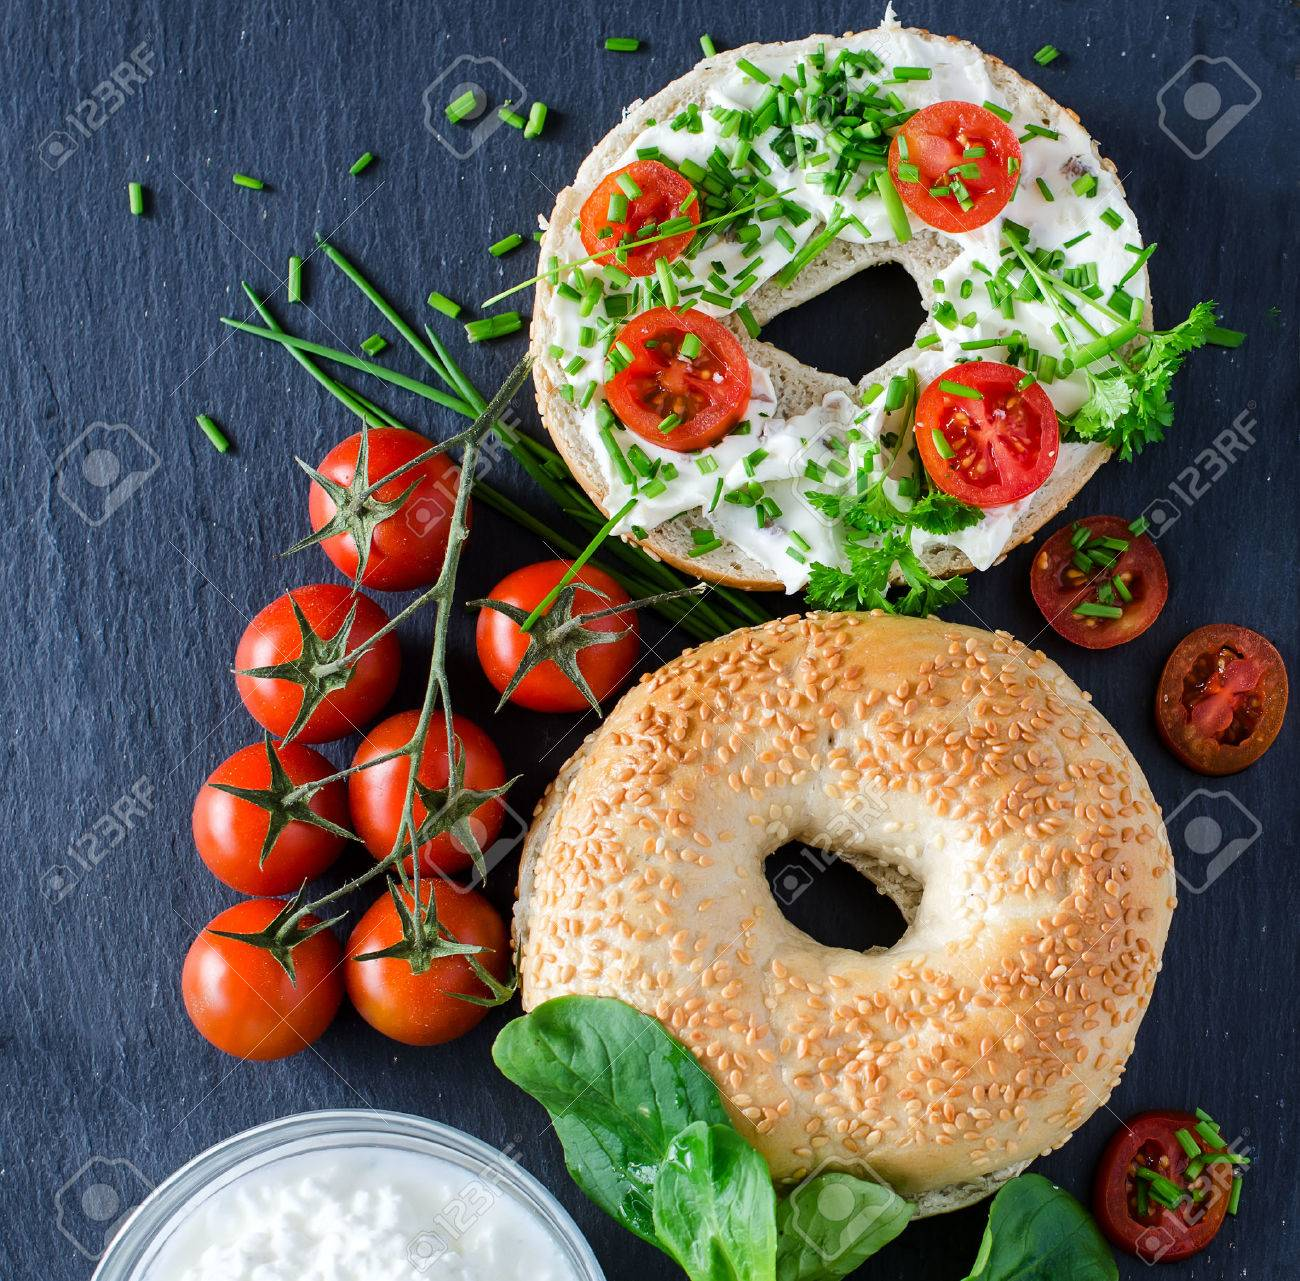 Bagels sandwiches with cream cheese, tomatoes and chives for healthy snack - 42641500